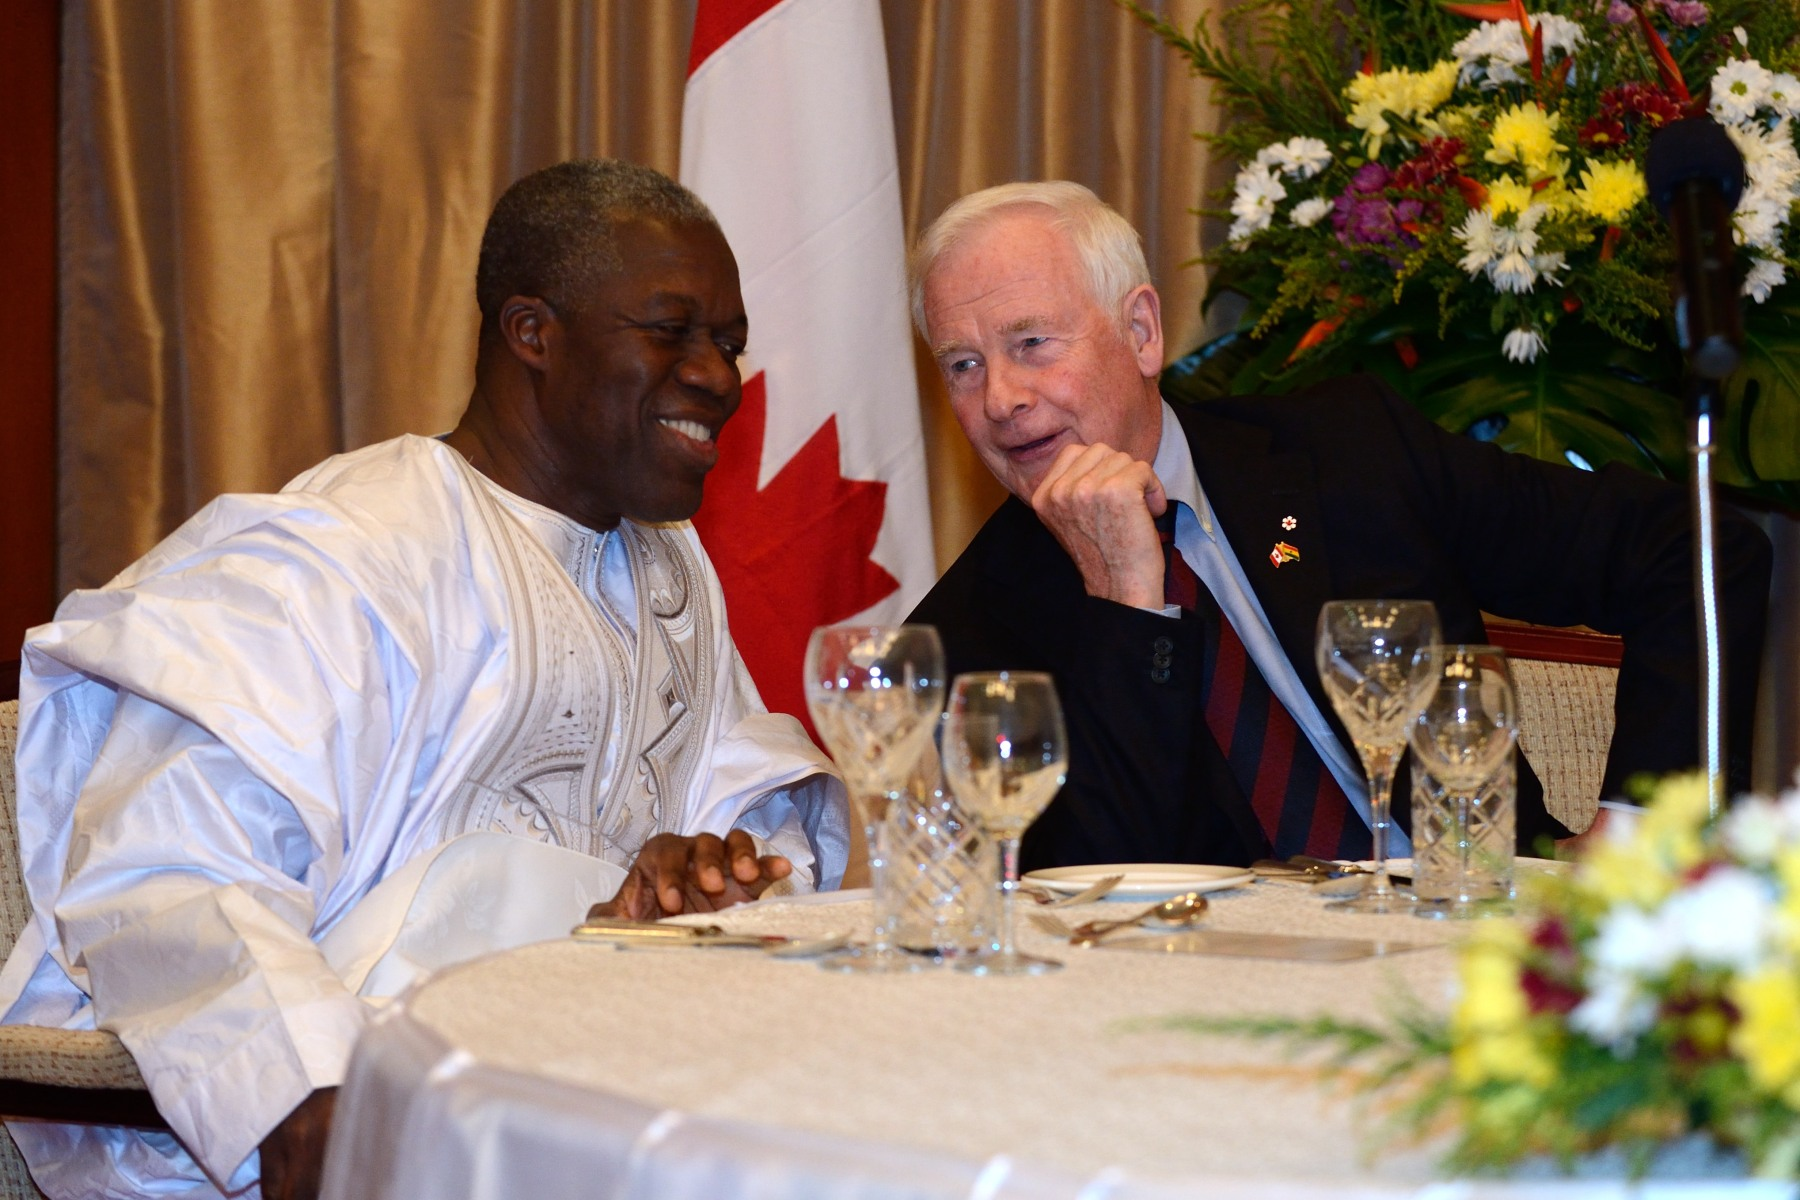 During the dinner, the Governor General discussed with His Excellency Kwesi Bekoe Amissah-Arthur, Vice-President of the Republic of Ghana, whom he had met earlier in the day.